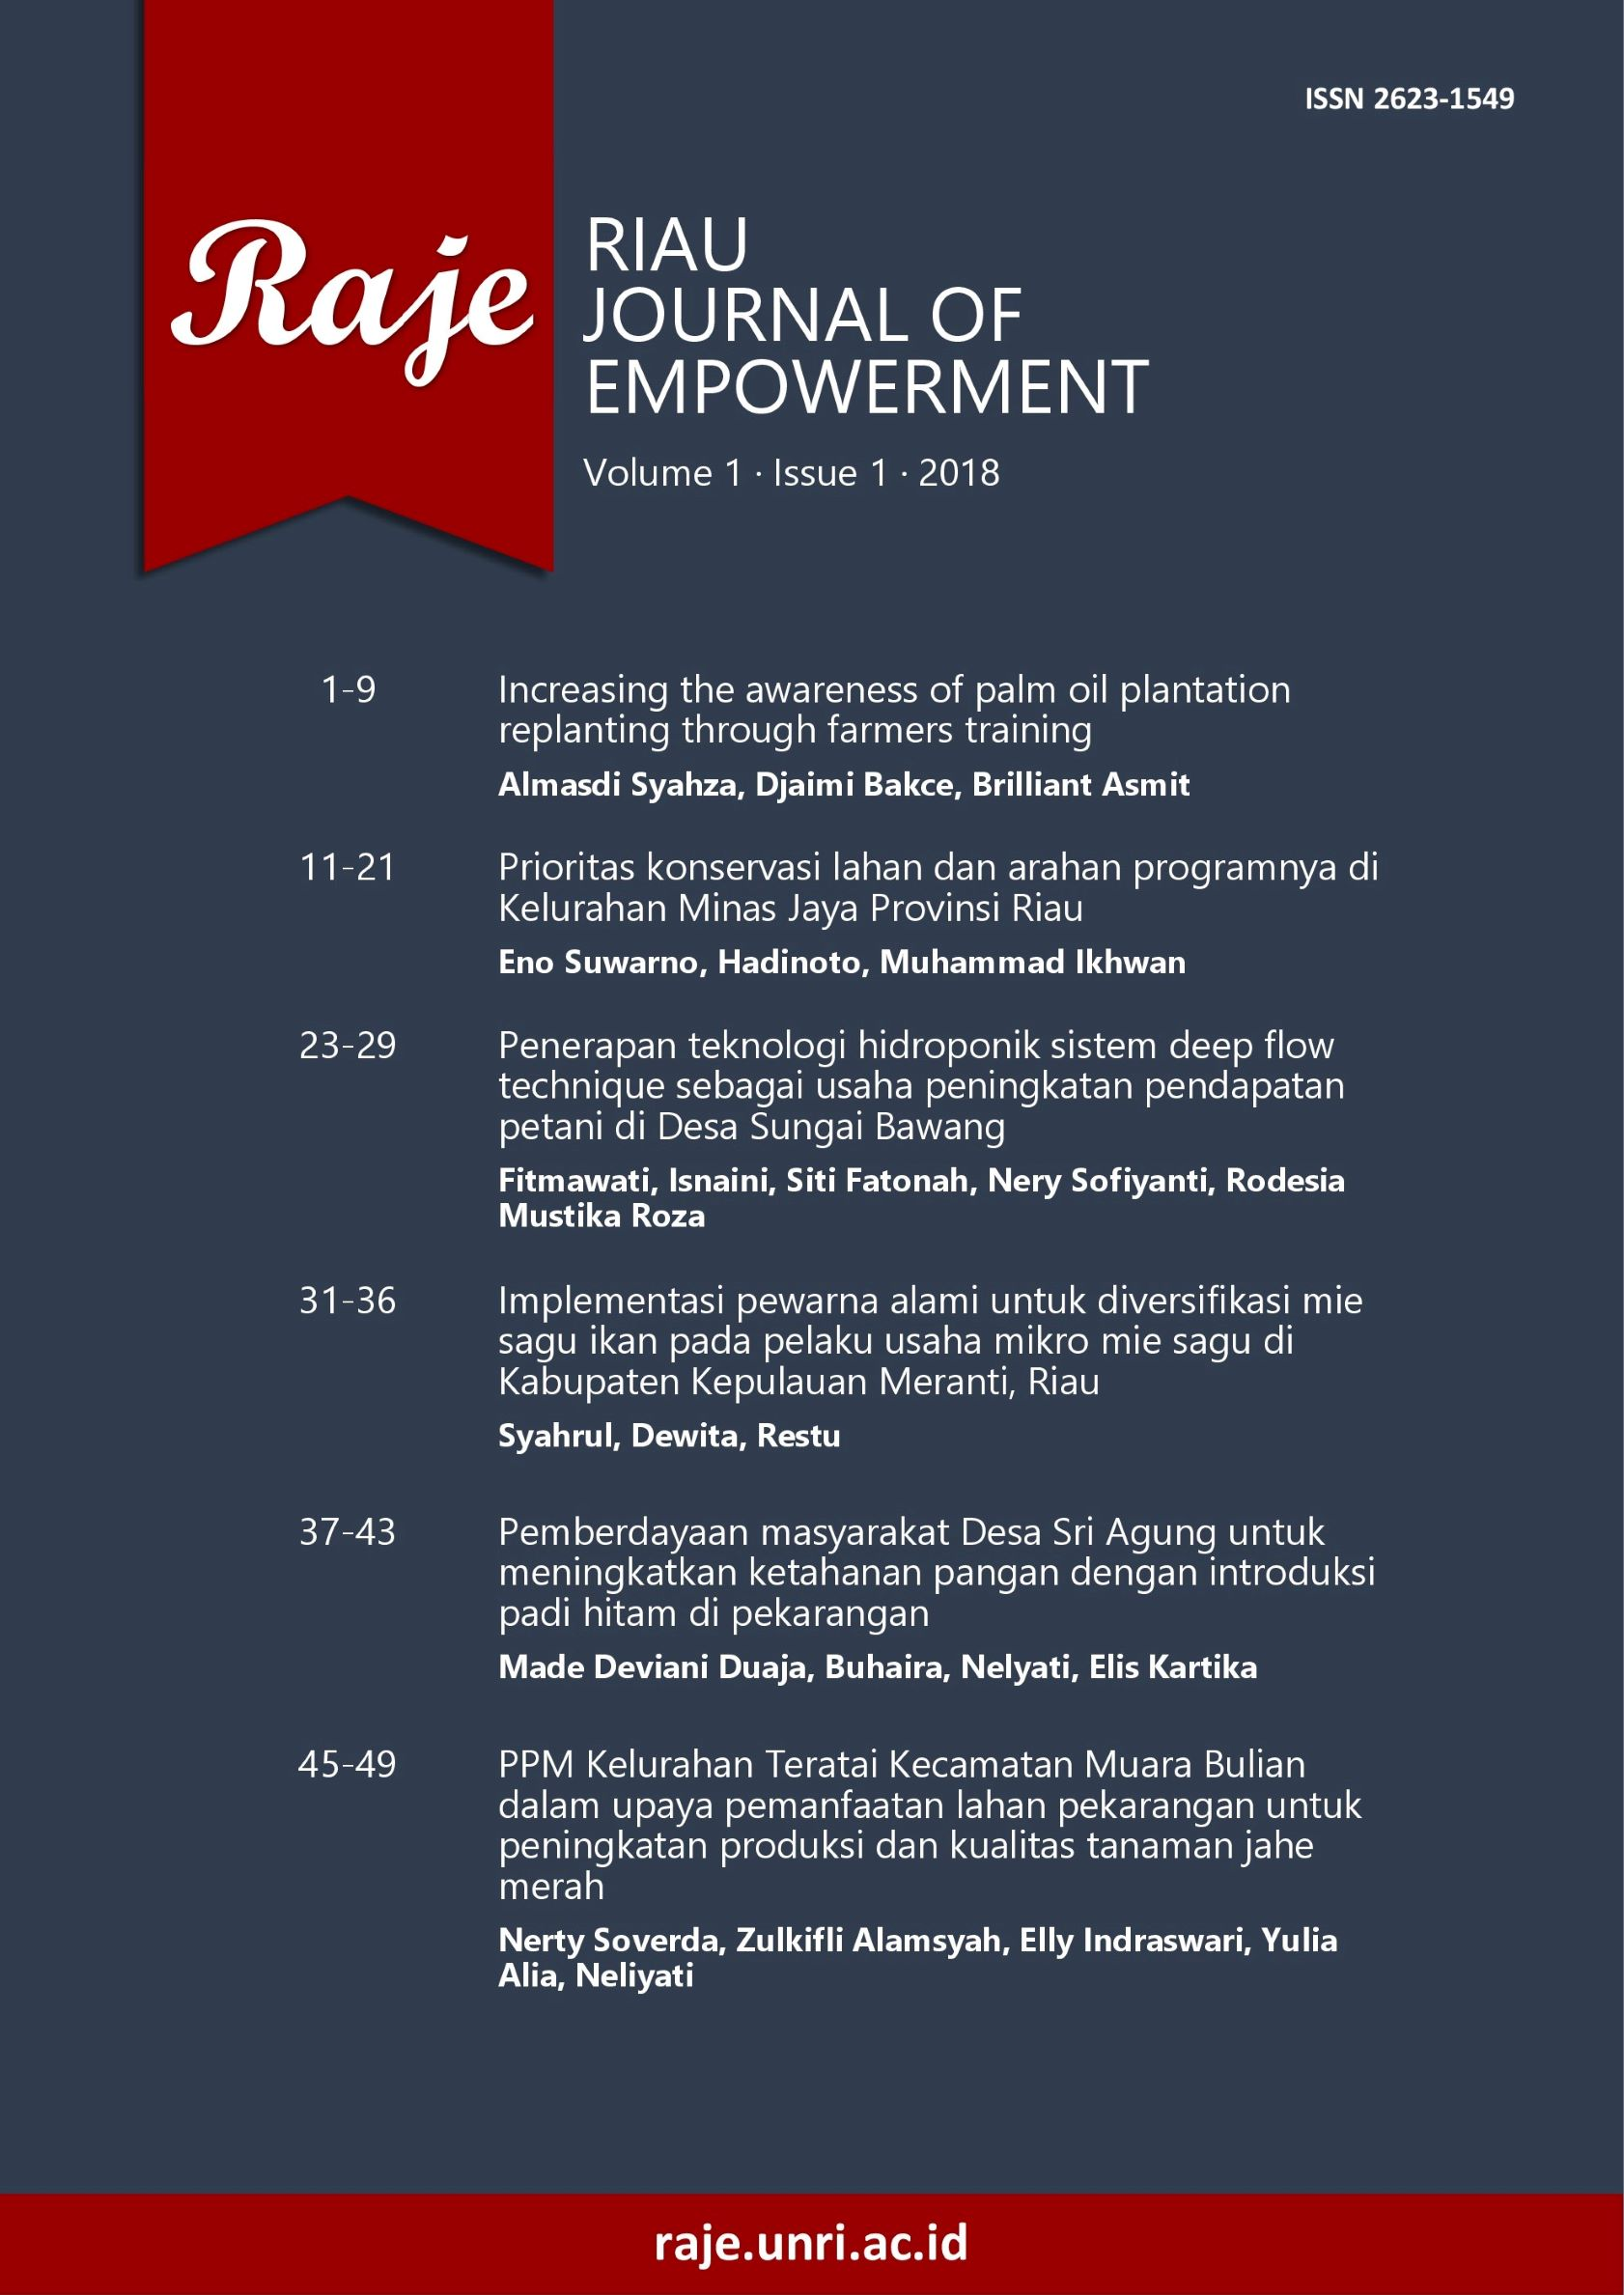 Riau Journal of Empowerment 1(1) 2018